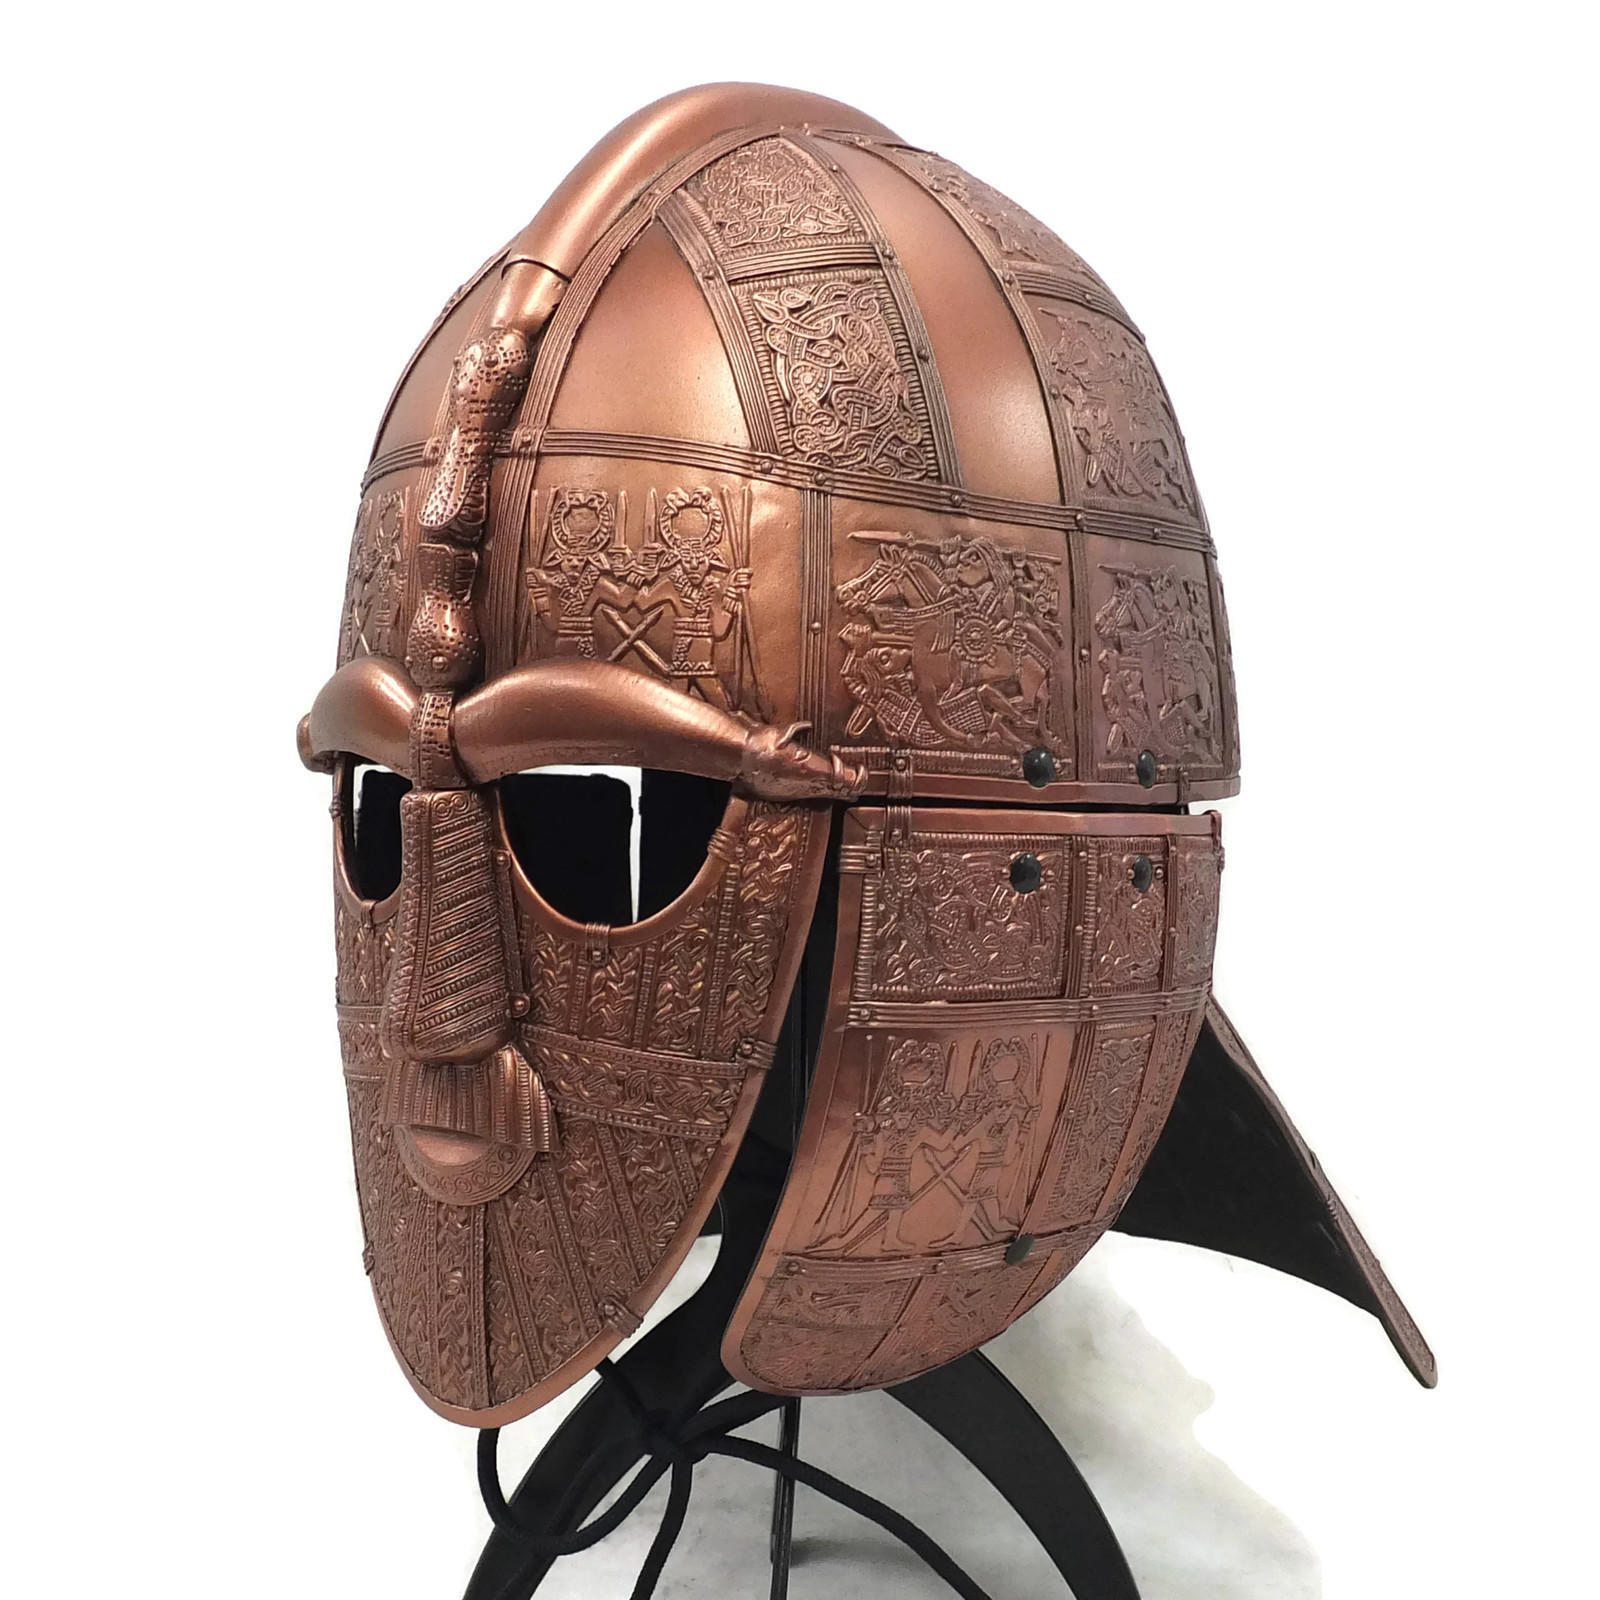 Sutto hoo larp helmet copper